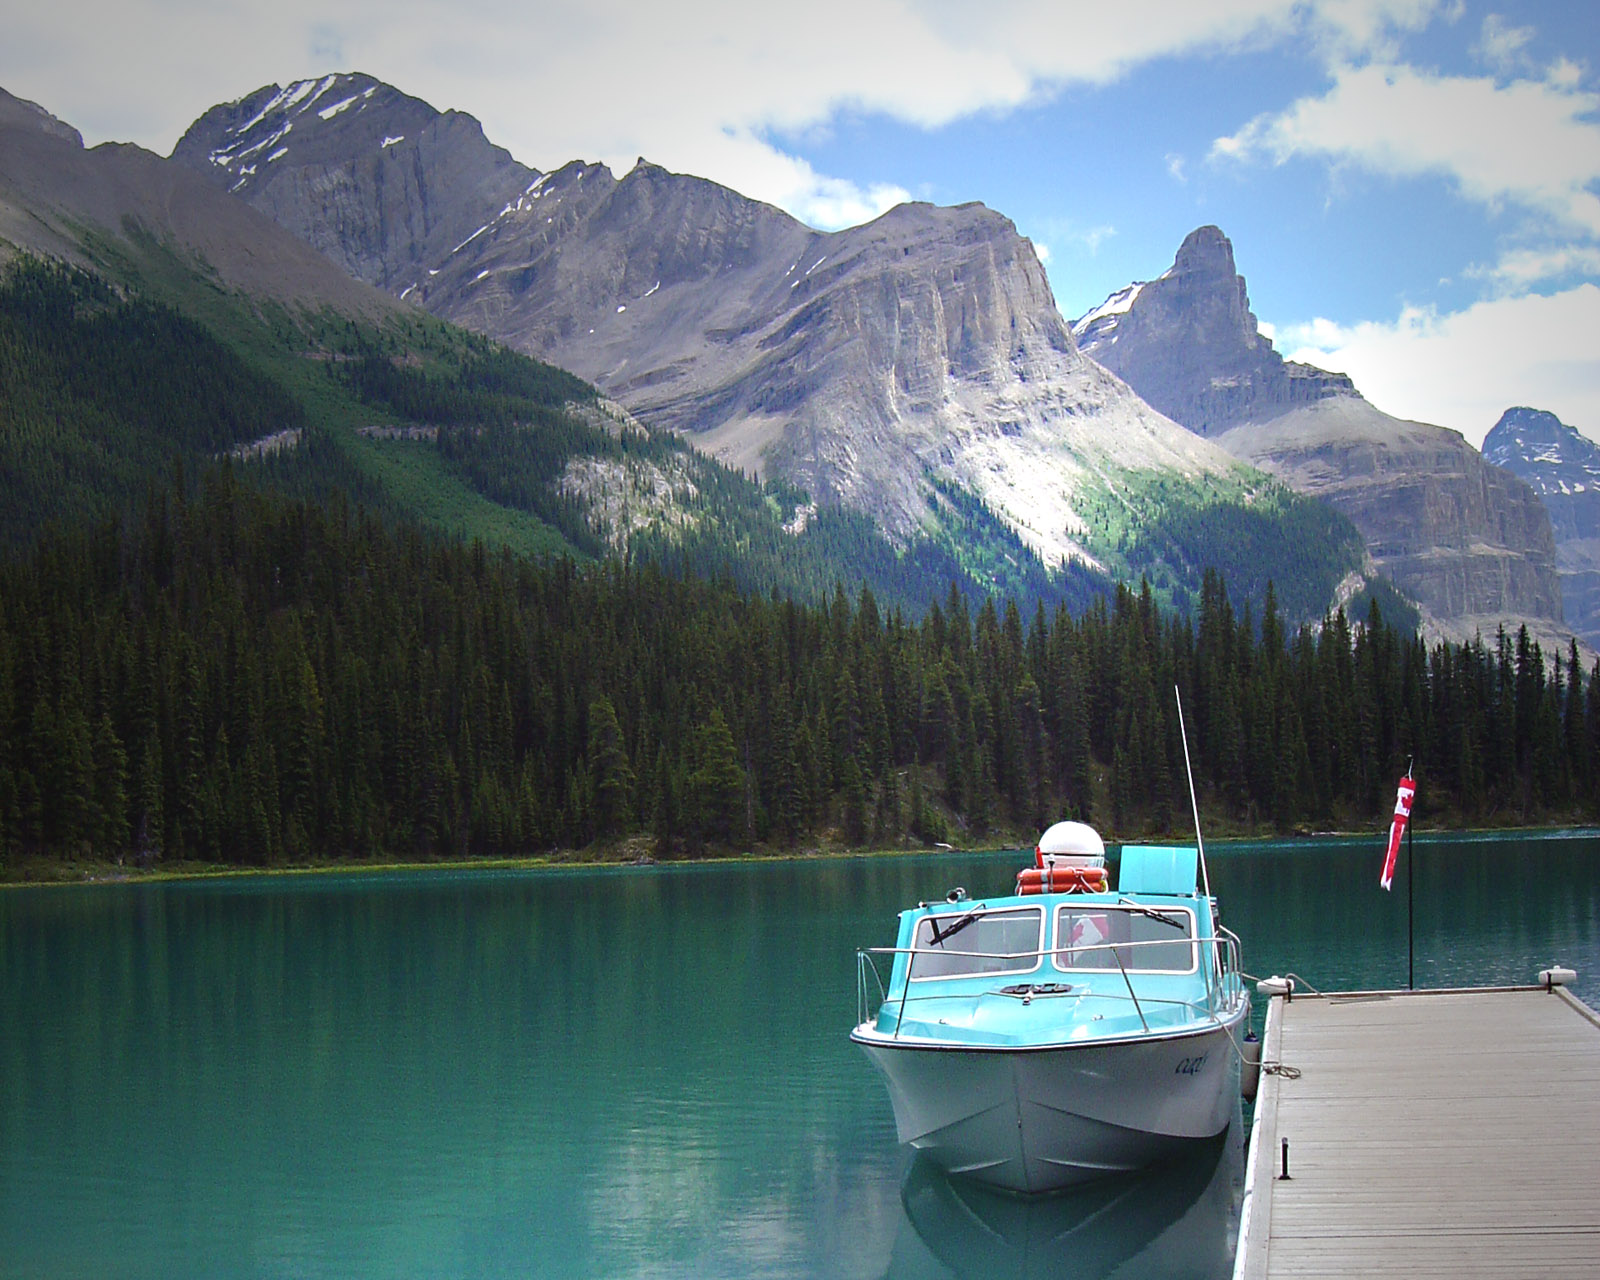 jasper national park photo gne lake boat scene dh wall s   gne lake boat scene photo